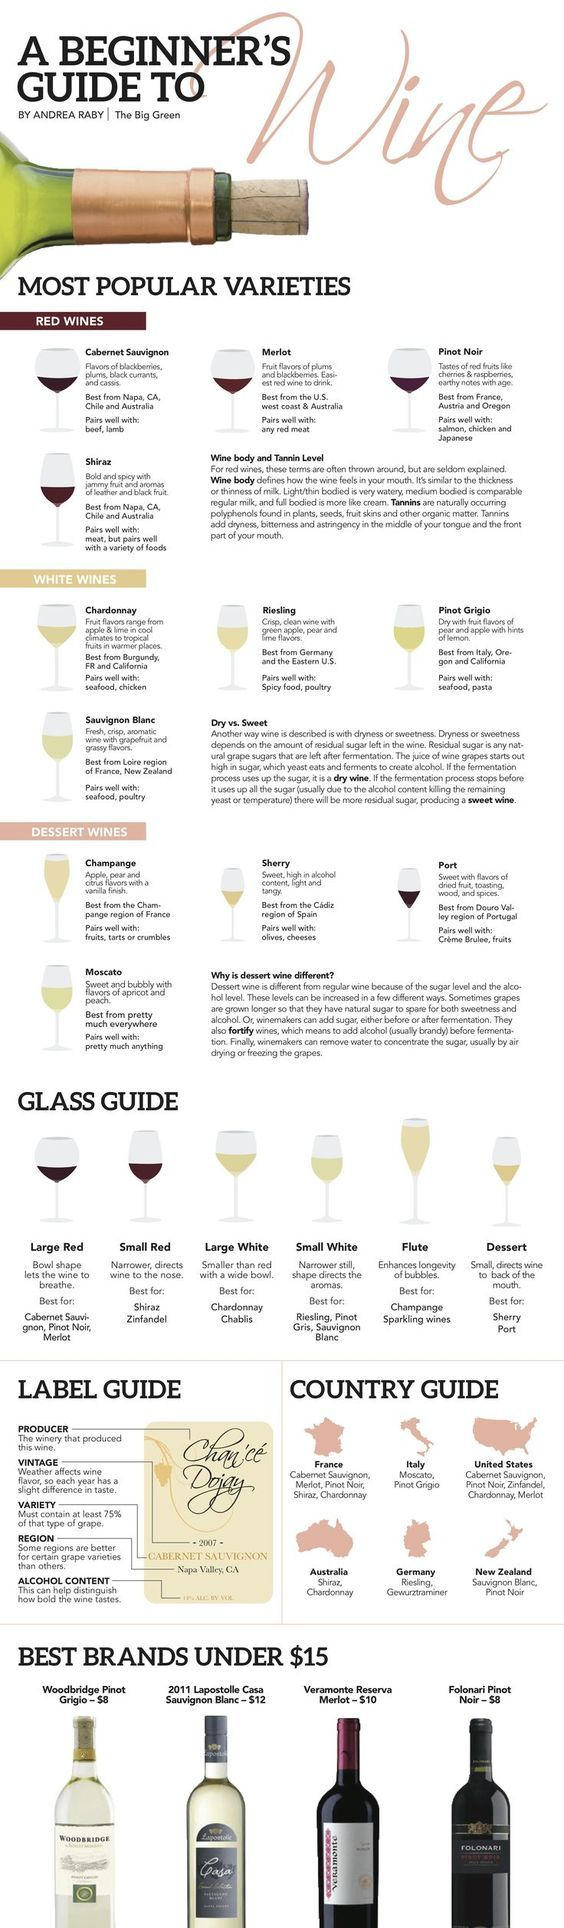 A Beginner's Guide to Wine | Cooking Guides | Culinary Guides